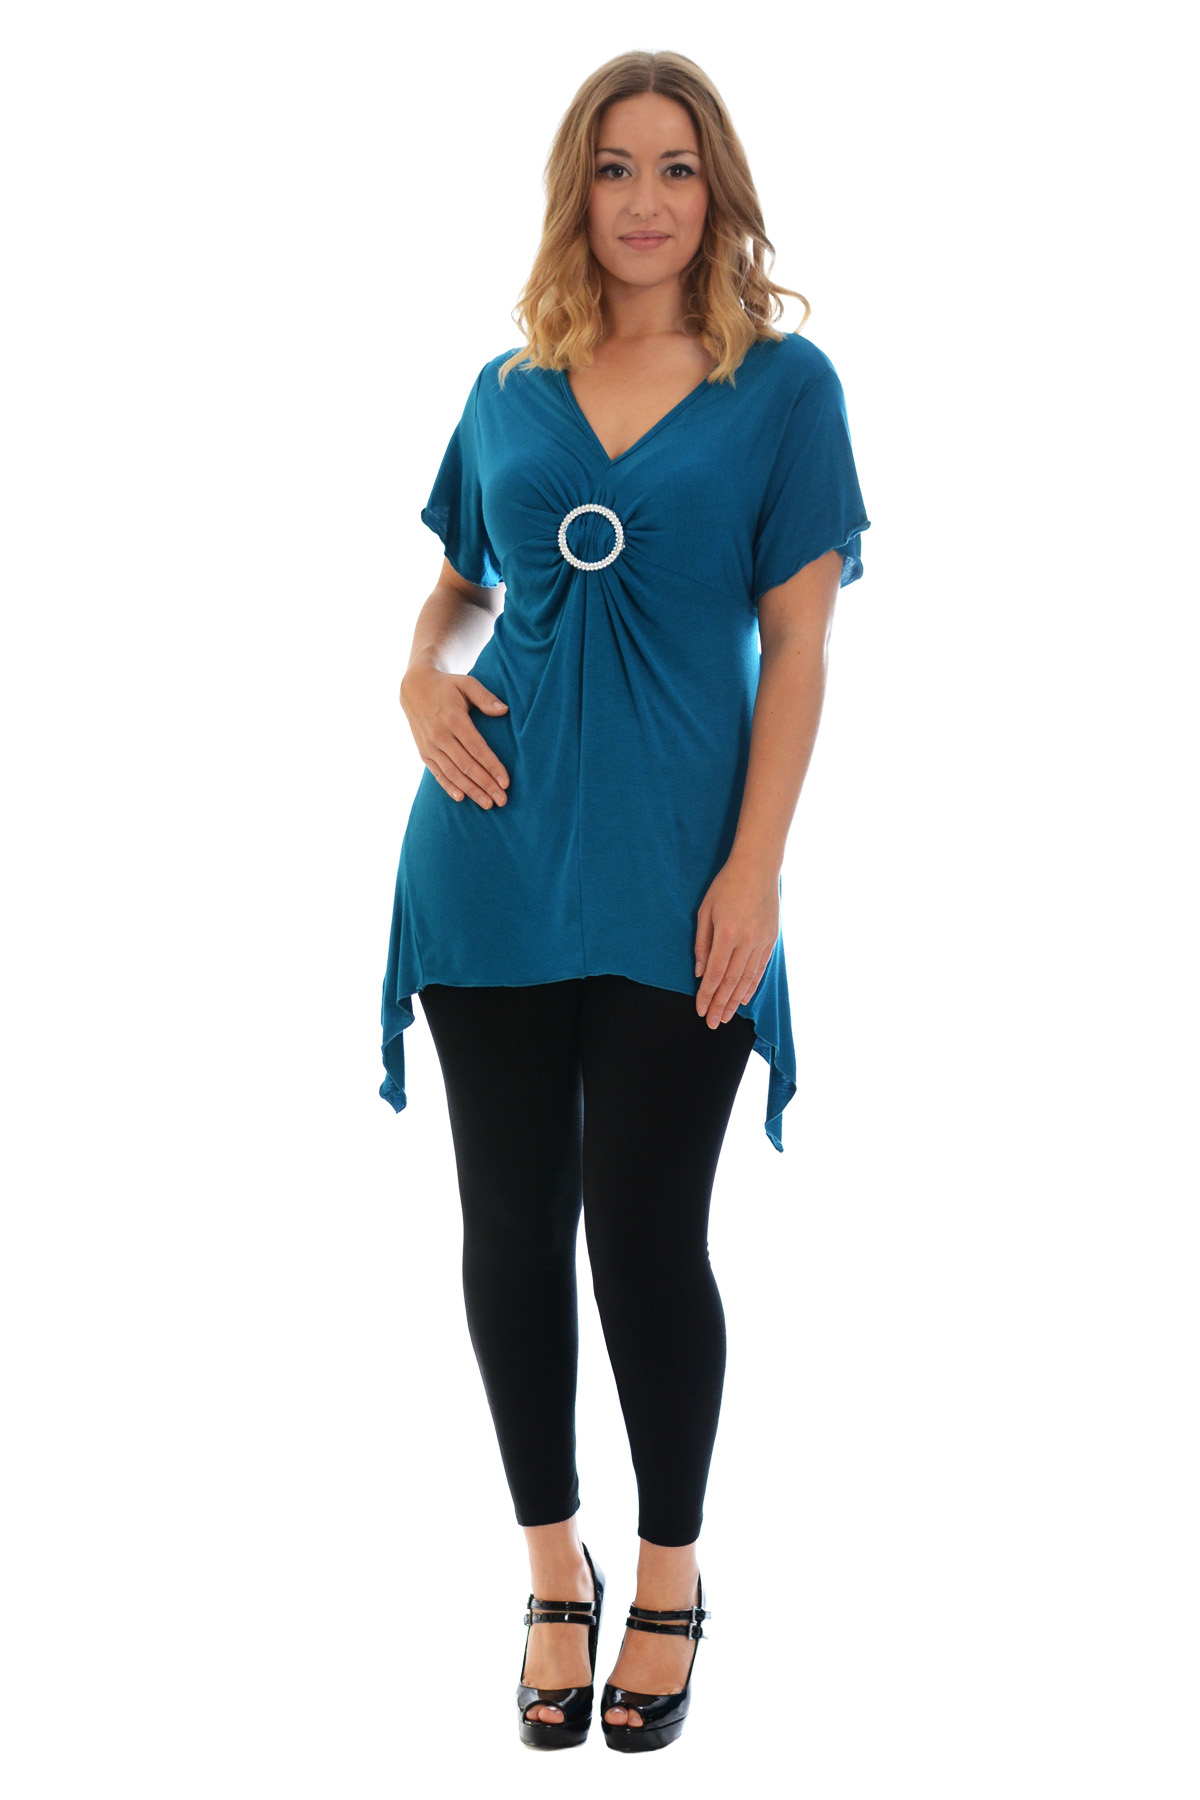 New-Womens-Plus-Size-Top-Ladies-T-Shirt-Buckle-Stud-A-Line-Asymmetric-Nouvelle thumbnail 66